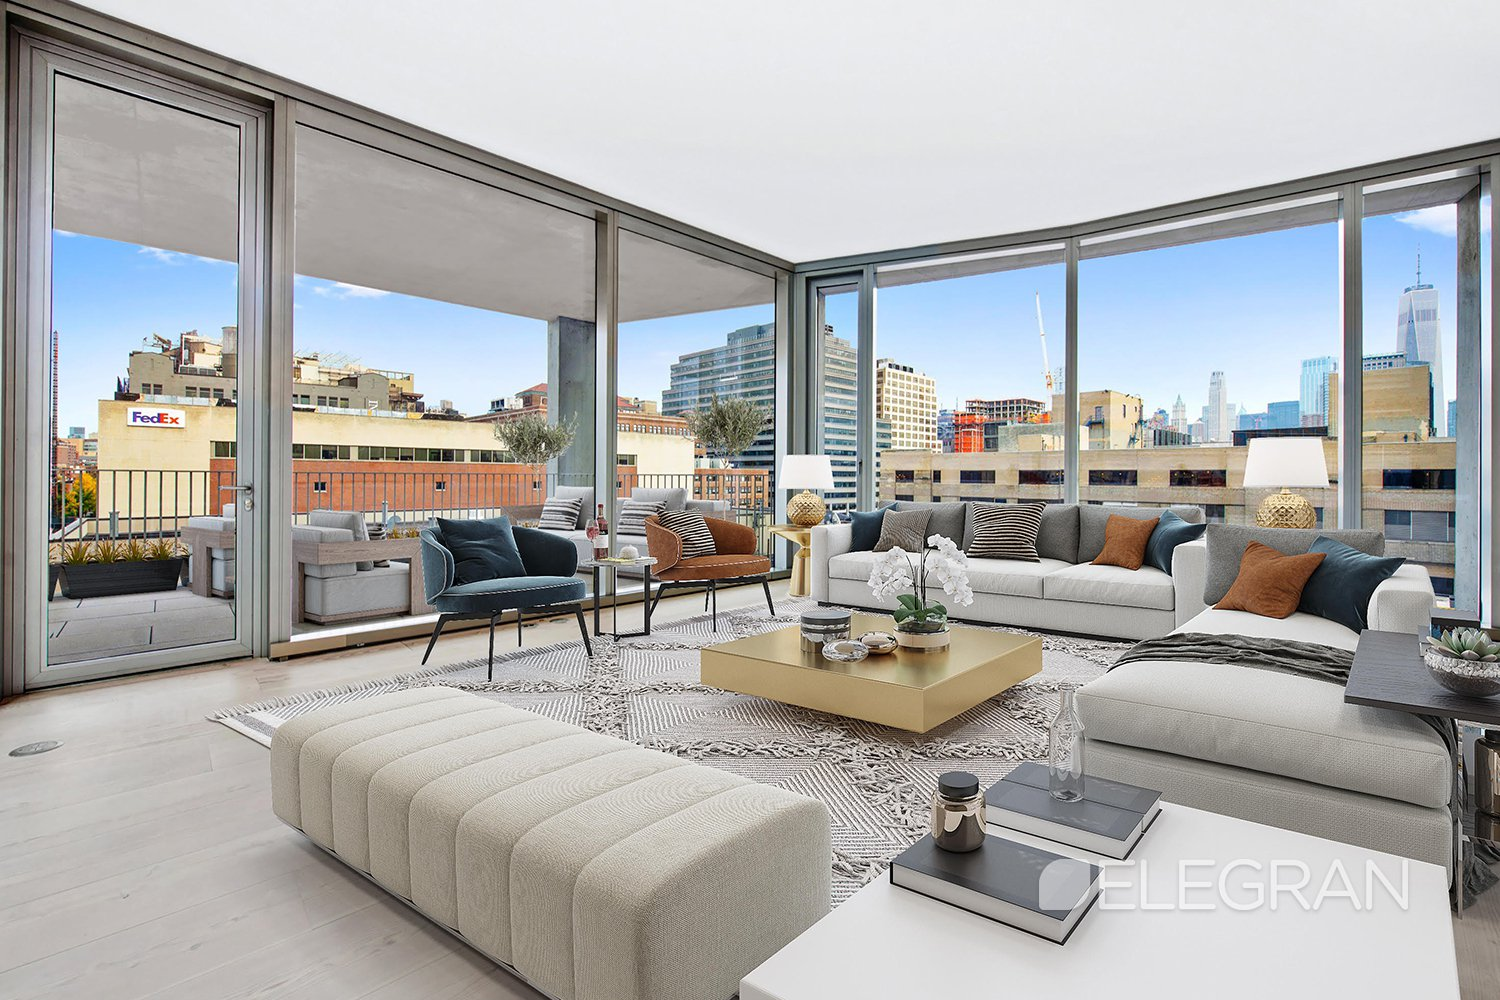 Private outdoor space, stunning, modern luxury finishes, world-class amenities, and more await you when you take advantage of this incredible opportunity to own a waterfront home in the West Village at 160 Leroy Street.This massive, 1728 square foot 2-bedroom, 2.5 bathroom home was meticulously designed by Herzog & de Meuron to be both timeless and to suit the needs of the modern New Yorker. The spacious layout boasts 12-inch wide-plank Scandinavian Larchwood floors throughout and a gracious living area that's flooded with natural light thanks to the 11-foot floor-to-ceiling windows featured on the triple custom pane curtain wall with UVB/UVA protected glass - the perfect space for entertaining and displaying fine art. Continue into the bright, airy great room that leads to the 200 SF terrace, where you can have the type of picture-perfect NYC mornings many only dream of, enjoying a cup of coffee while overlooking the Madison Cox-designed private park.The open chef's kitchen, crafted by Bulthaup, features Larchwood cabinets, stunning Sivec marble slab countertops and backsplash, and a charming breakfast bar. The fully integrated appliances include a Sub-Zero refrigerator, Wolf oven, Gaggenau cooktop, and Miele dishwasher, Sub-Zero freezer and wine refrigerator, Wolf steam oven and integrated Wolf coffee/espresso machine. Everything you need to craft the perfect meal, right at your fingertips.The master bedroom suite is the perfect place for rest, relaxation, and rejuvenation. It boasts spectacular river views, a dressing room, and a lavish, spa-like master bathroom is covered in stunning Sivec marble and features radiant heated floors, a deep soaking tub, a double vanity, and a large stall shower. The spacious second bedroom also features a large dressing area and its own luxurious, travertine-clad en-suite bathroom. For guests, there is a lovely powder room boasting floor-to-ceiling Scandinavian Larchwood and a custom vanity. This remarkable home also includes a la